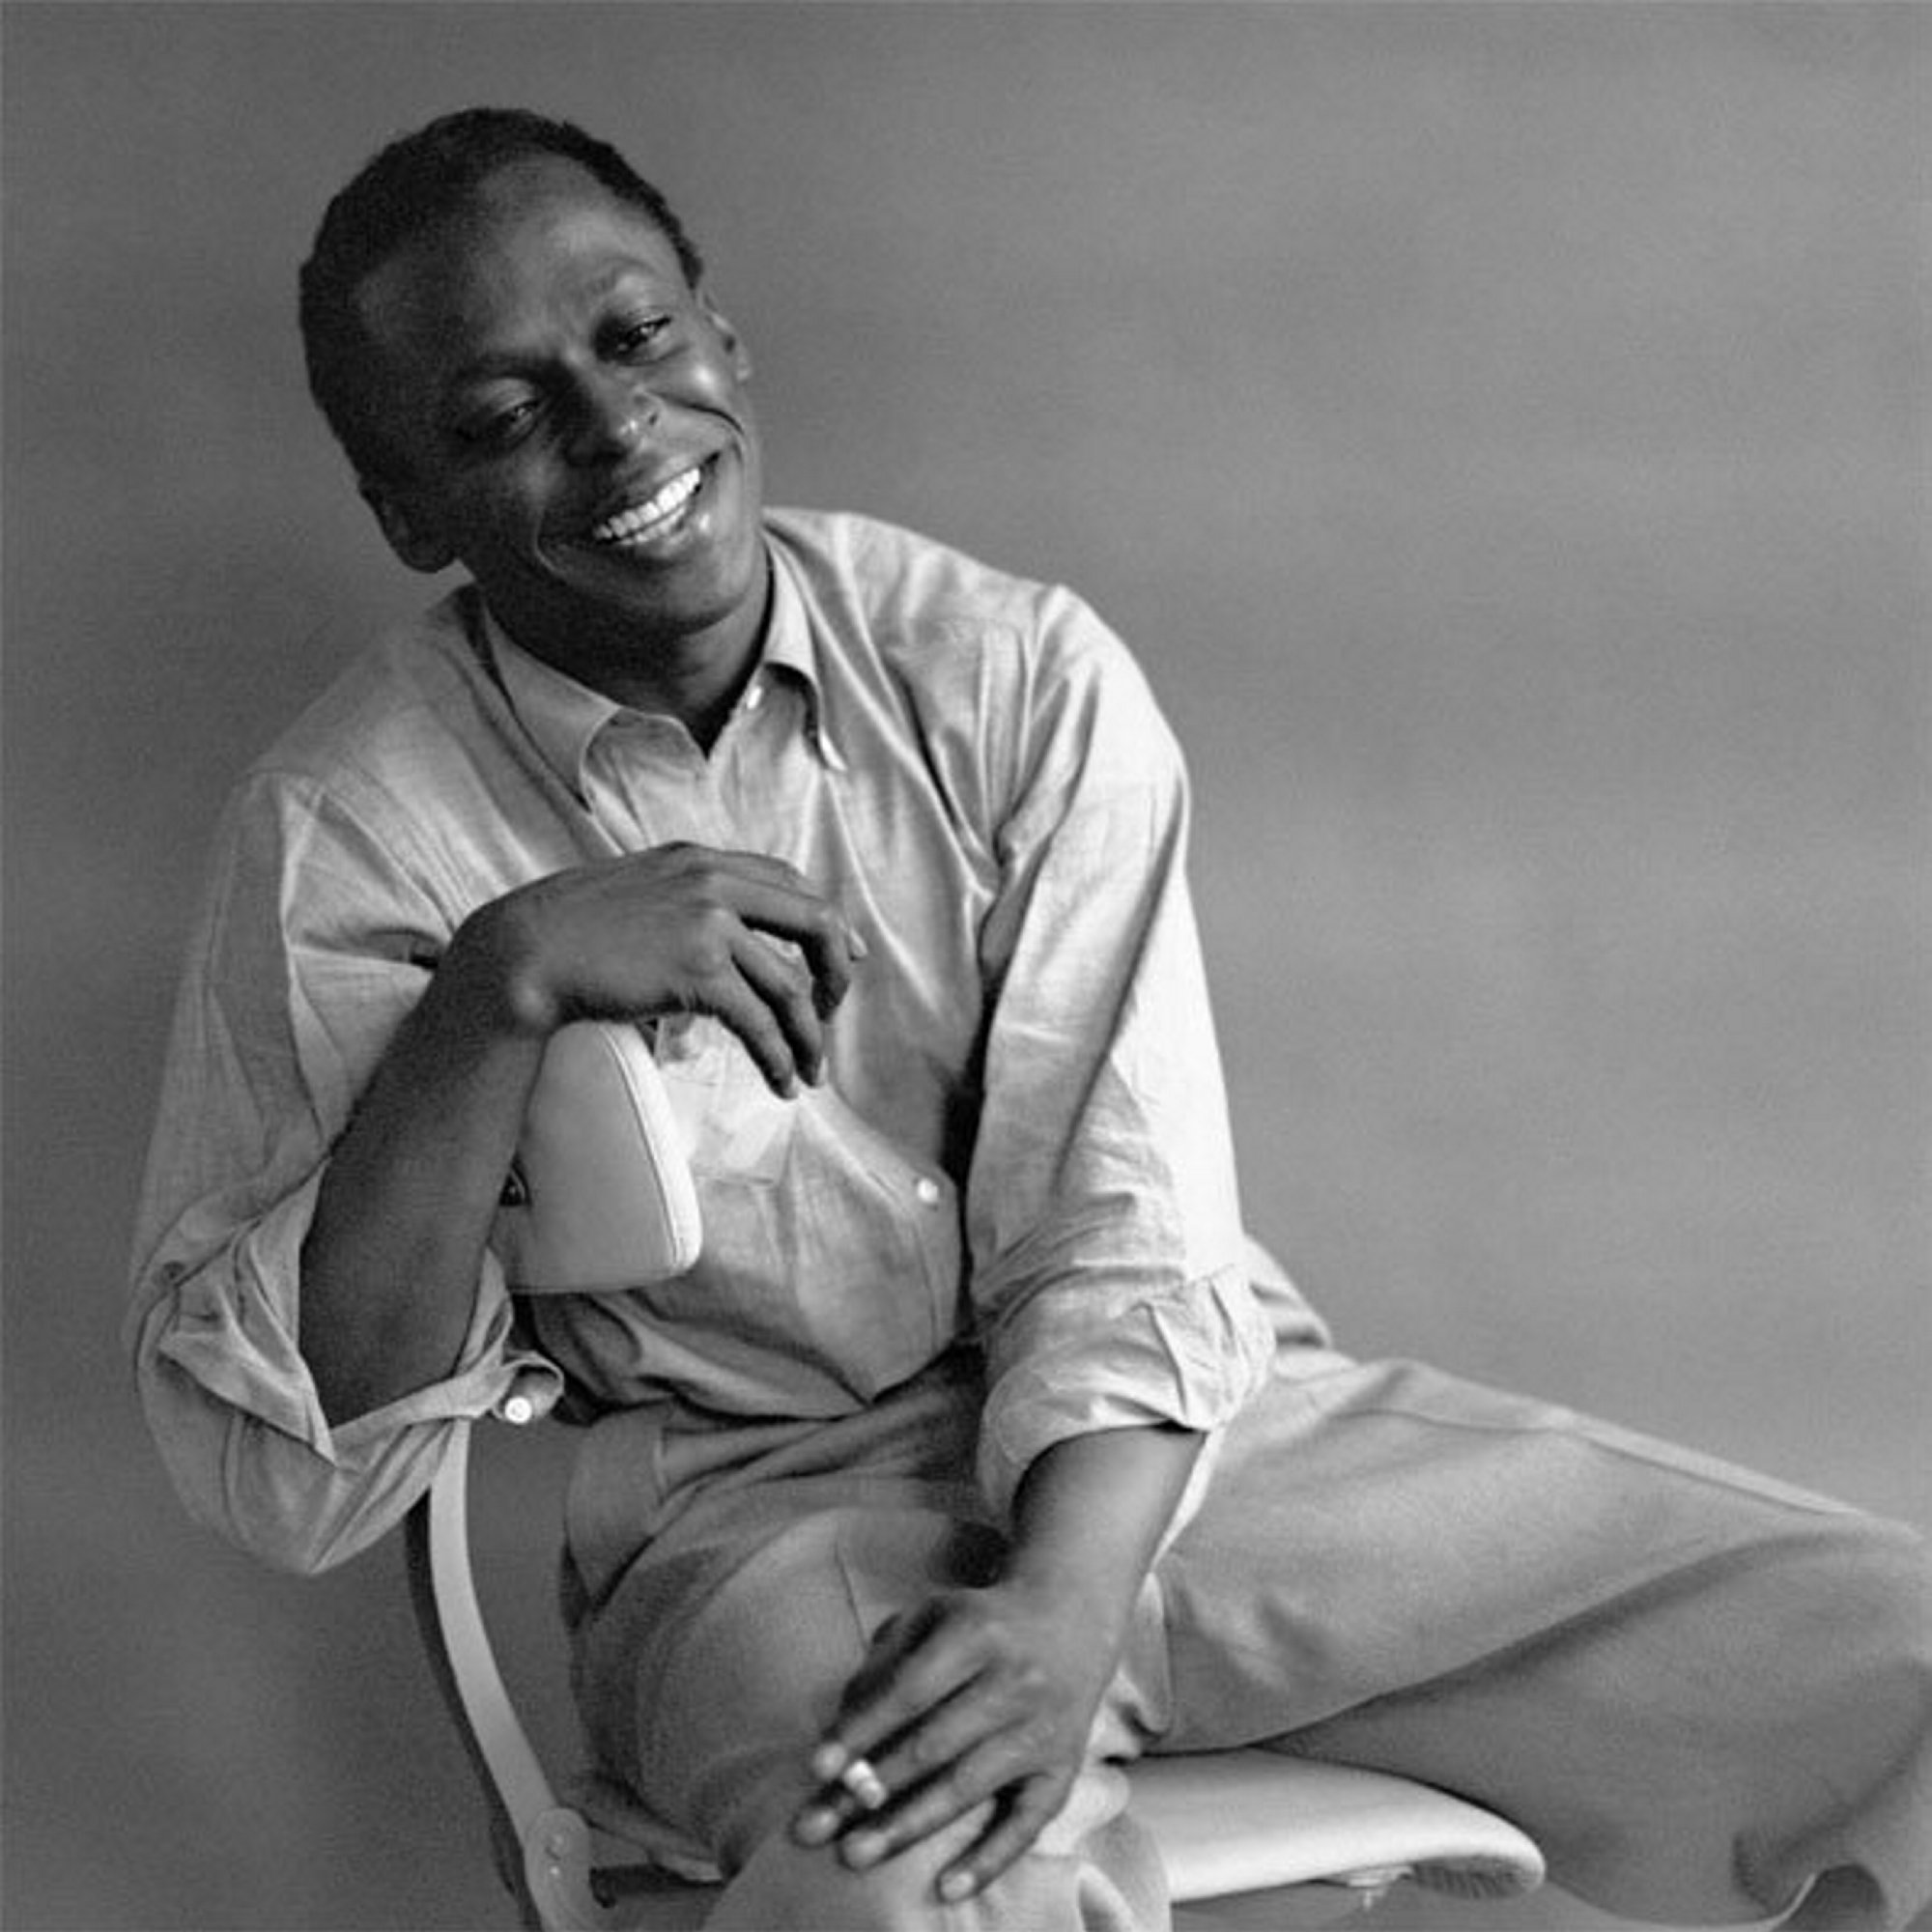 @jazzdotorg #MilesDavis—one of the most influential musicians of the 20th century—was born on this day in 1926. Which album or recording remains your favorite?